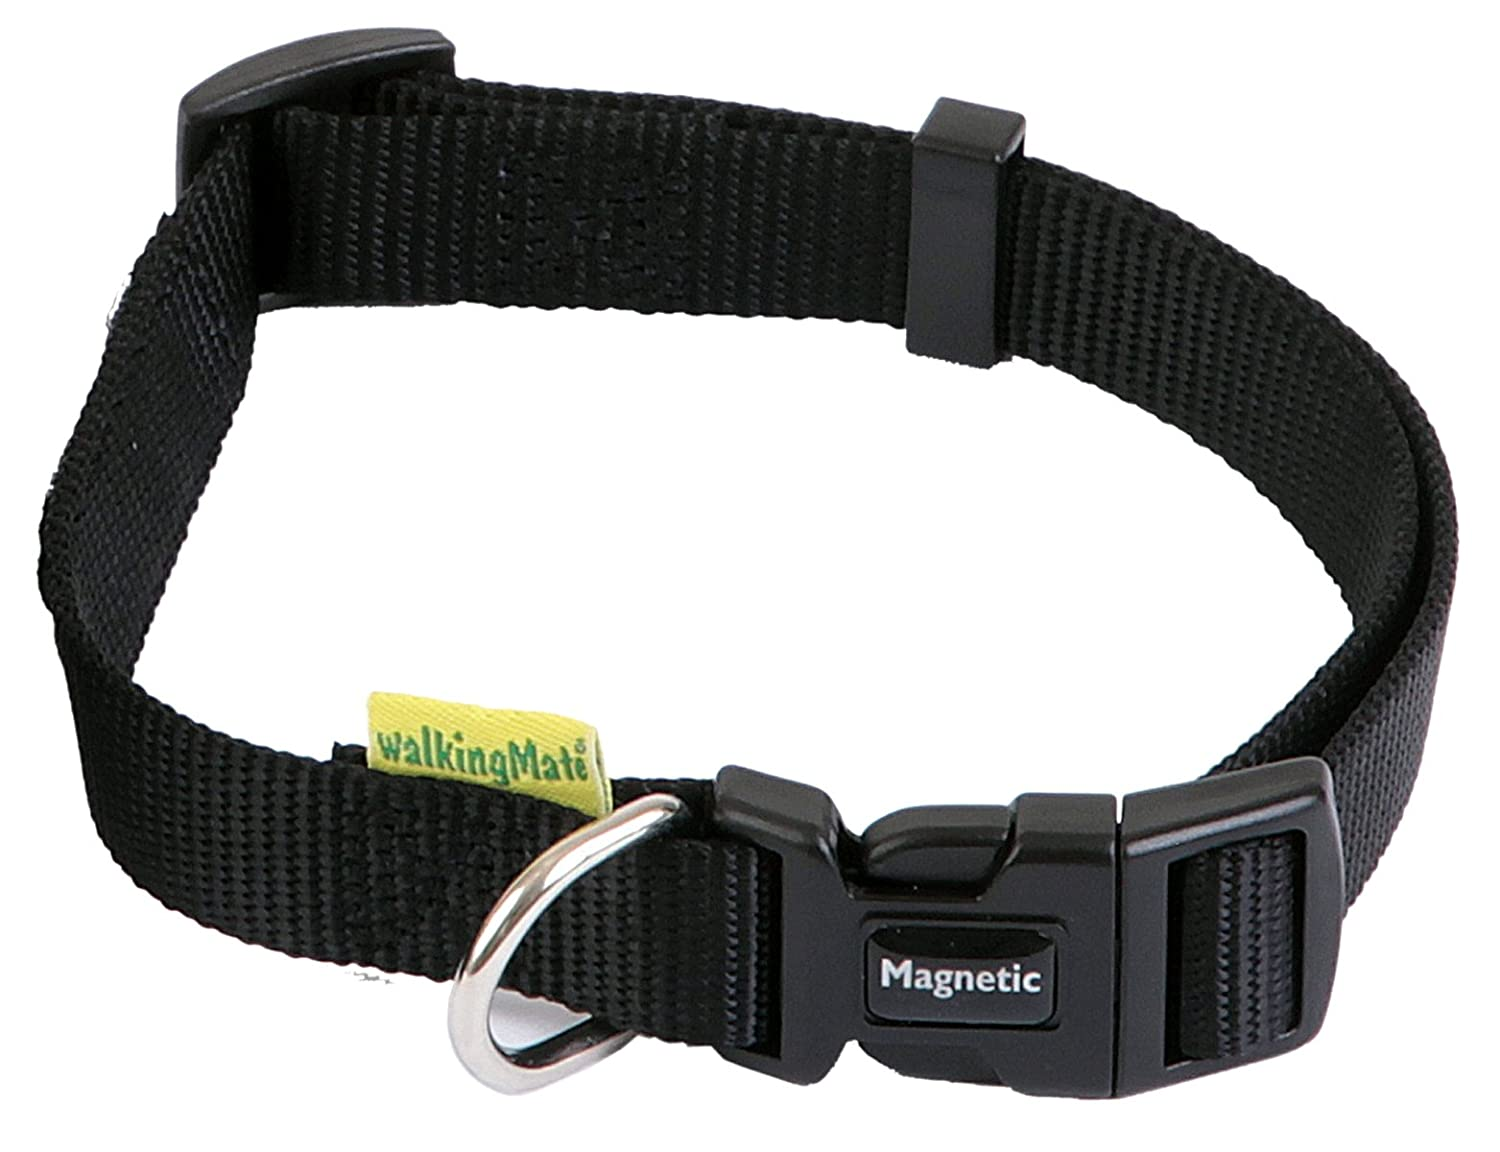 WalkingMate Magnetic Collar, 19mm x 14-20-inch, Black